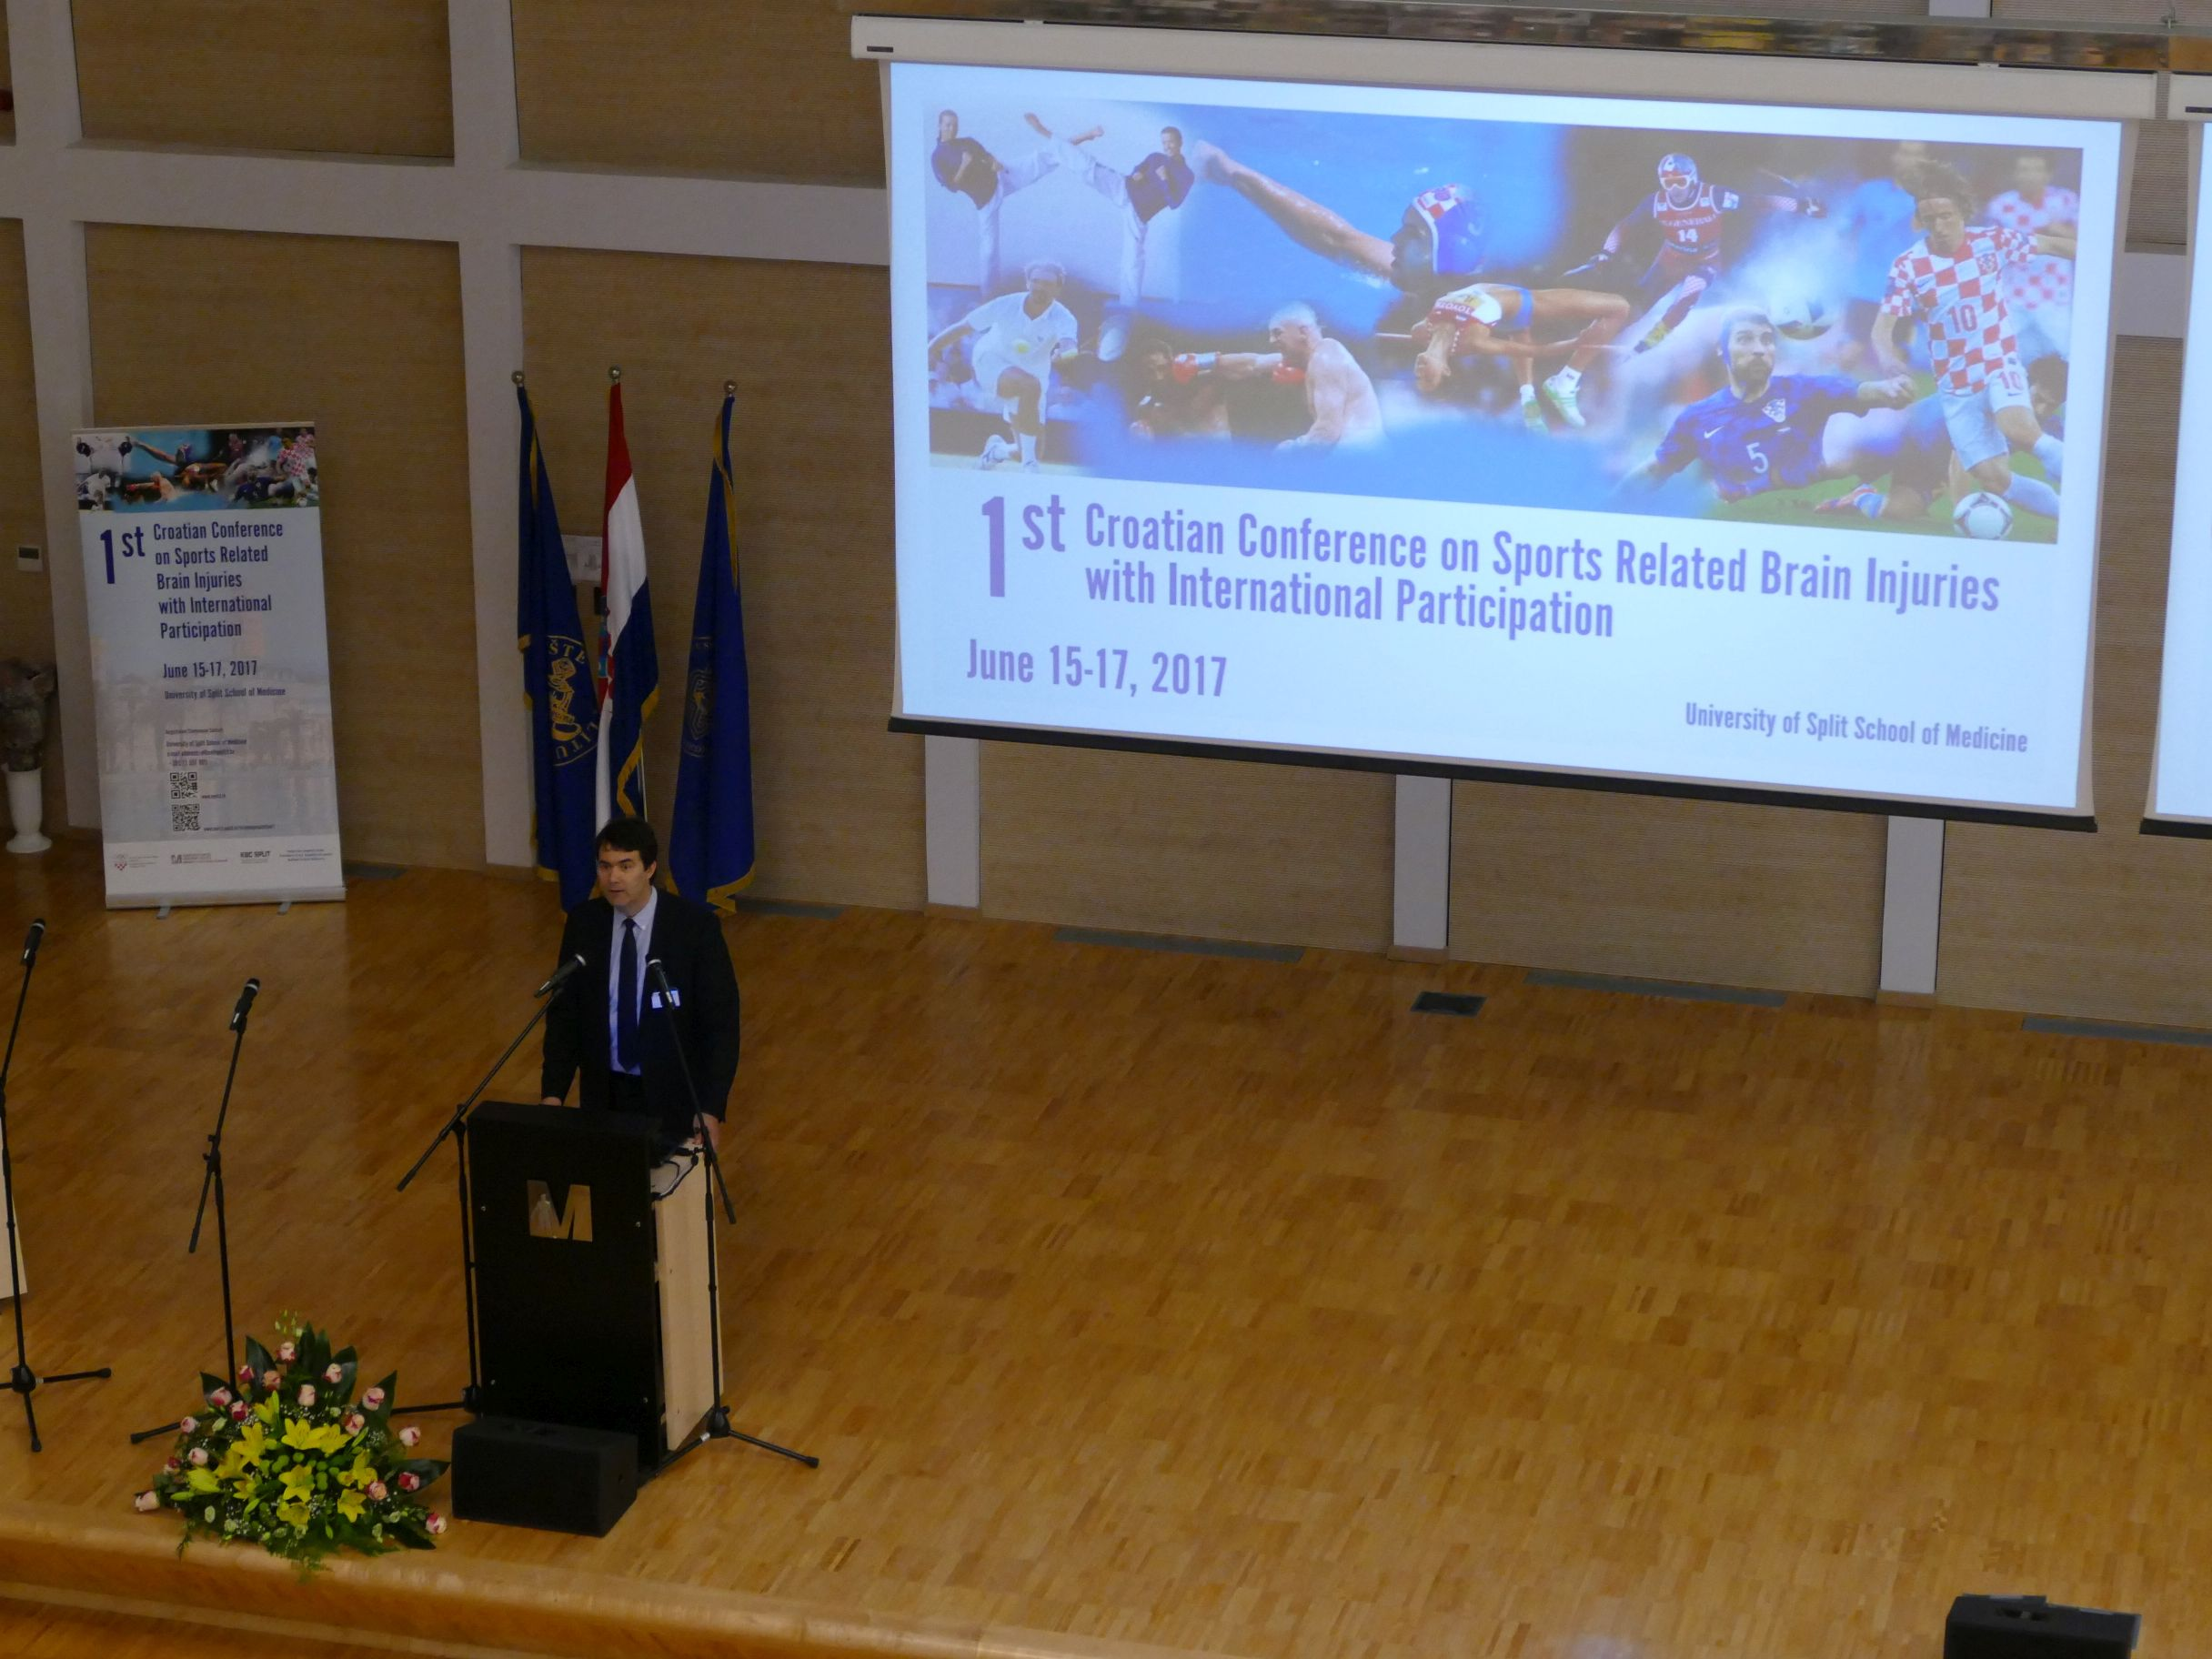 1st Croatian Conference on Sports Related Brain Injuries, June 15-17, 2017 - Photo Gallery